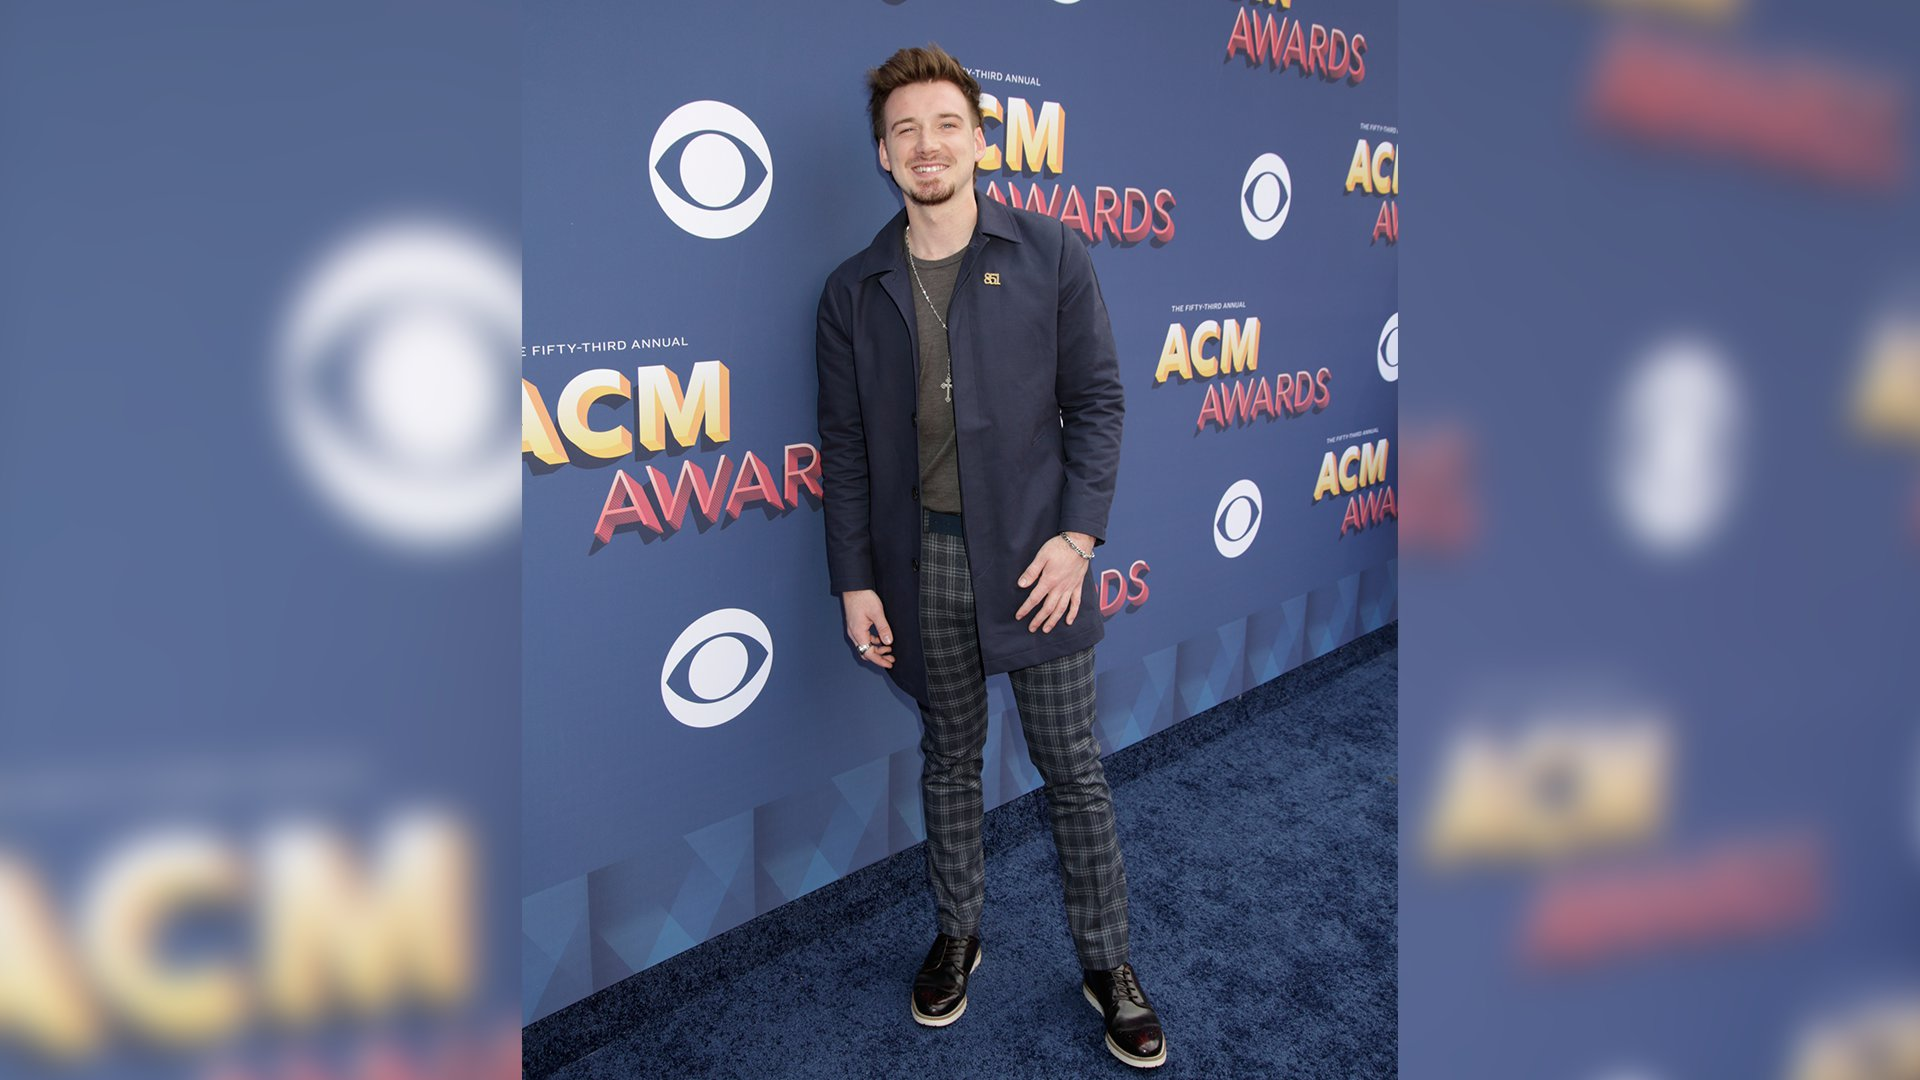 Morgan Wallen is currently heating up the ACM red carpet and the charts with his new song